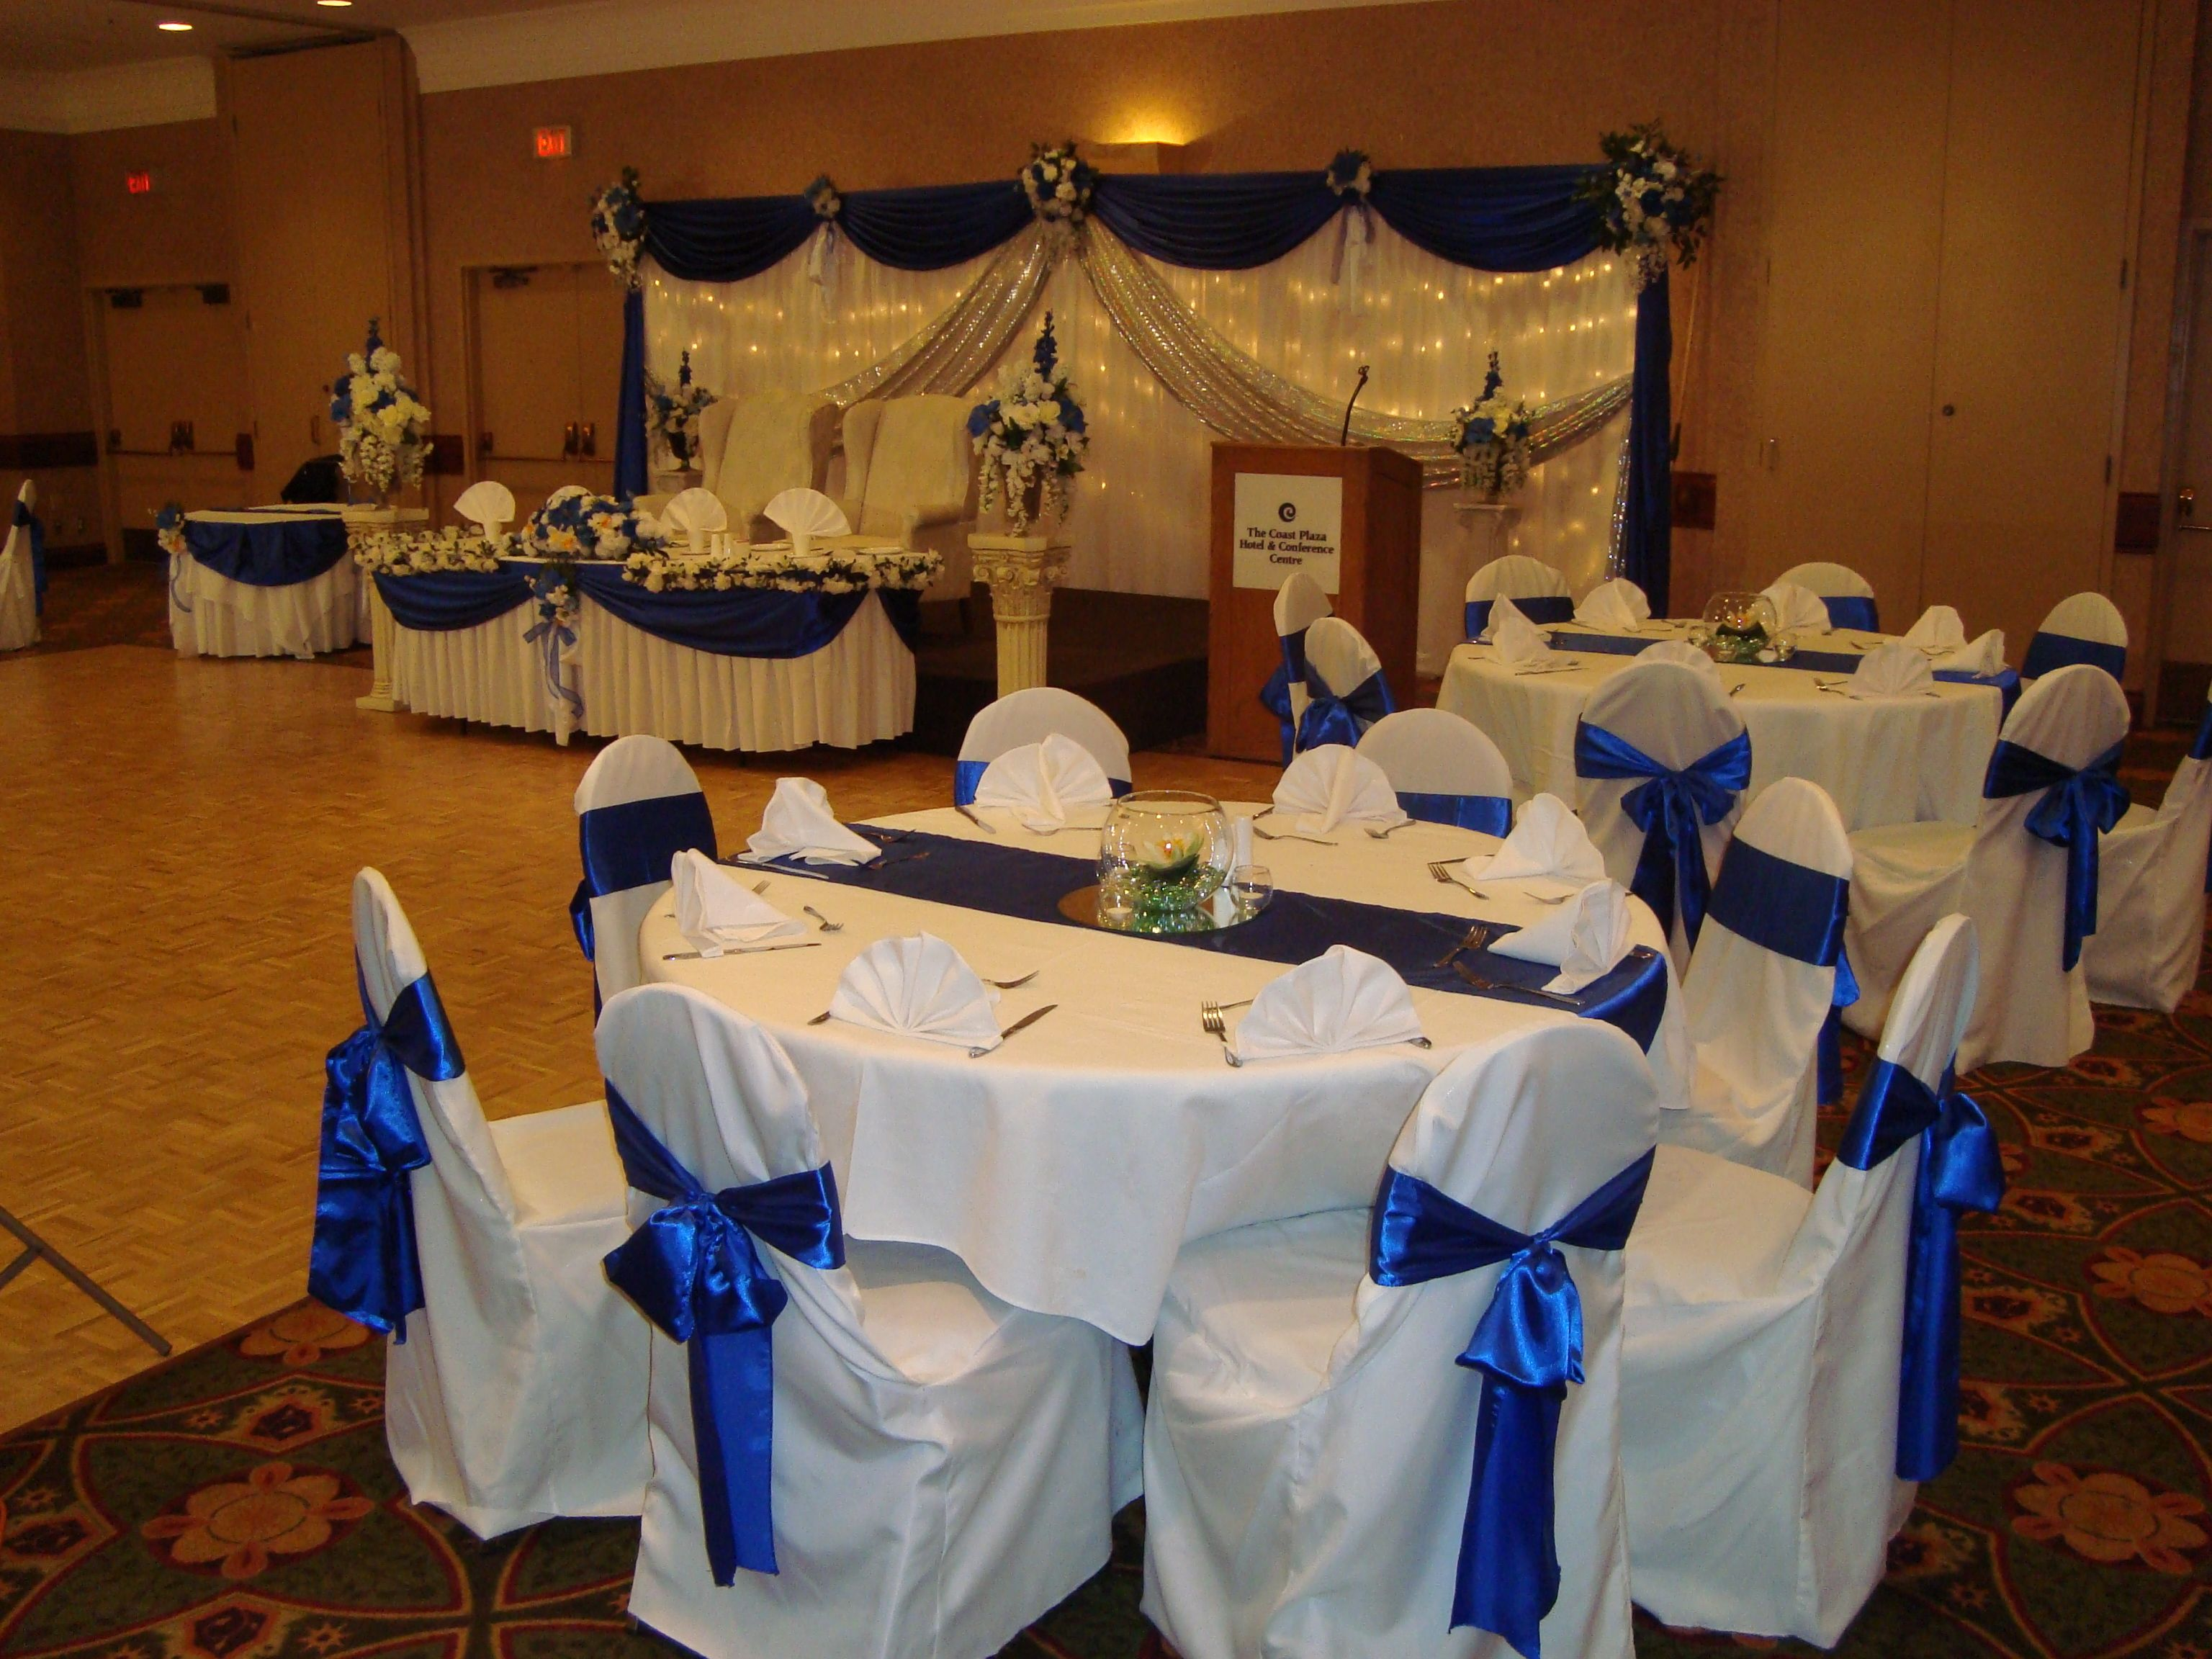 Banquet hall decoration by noretas decor inc http for Hall decoration